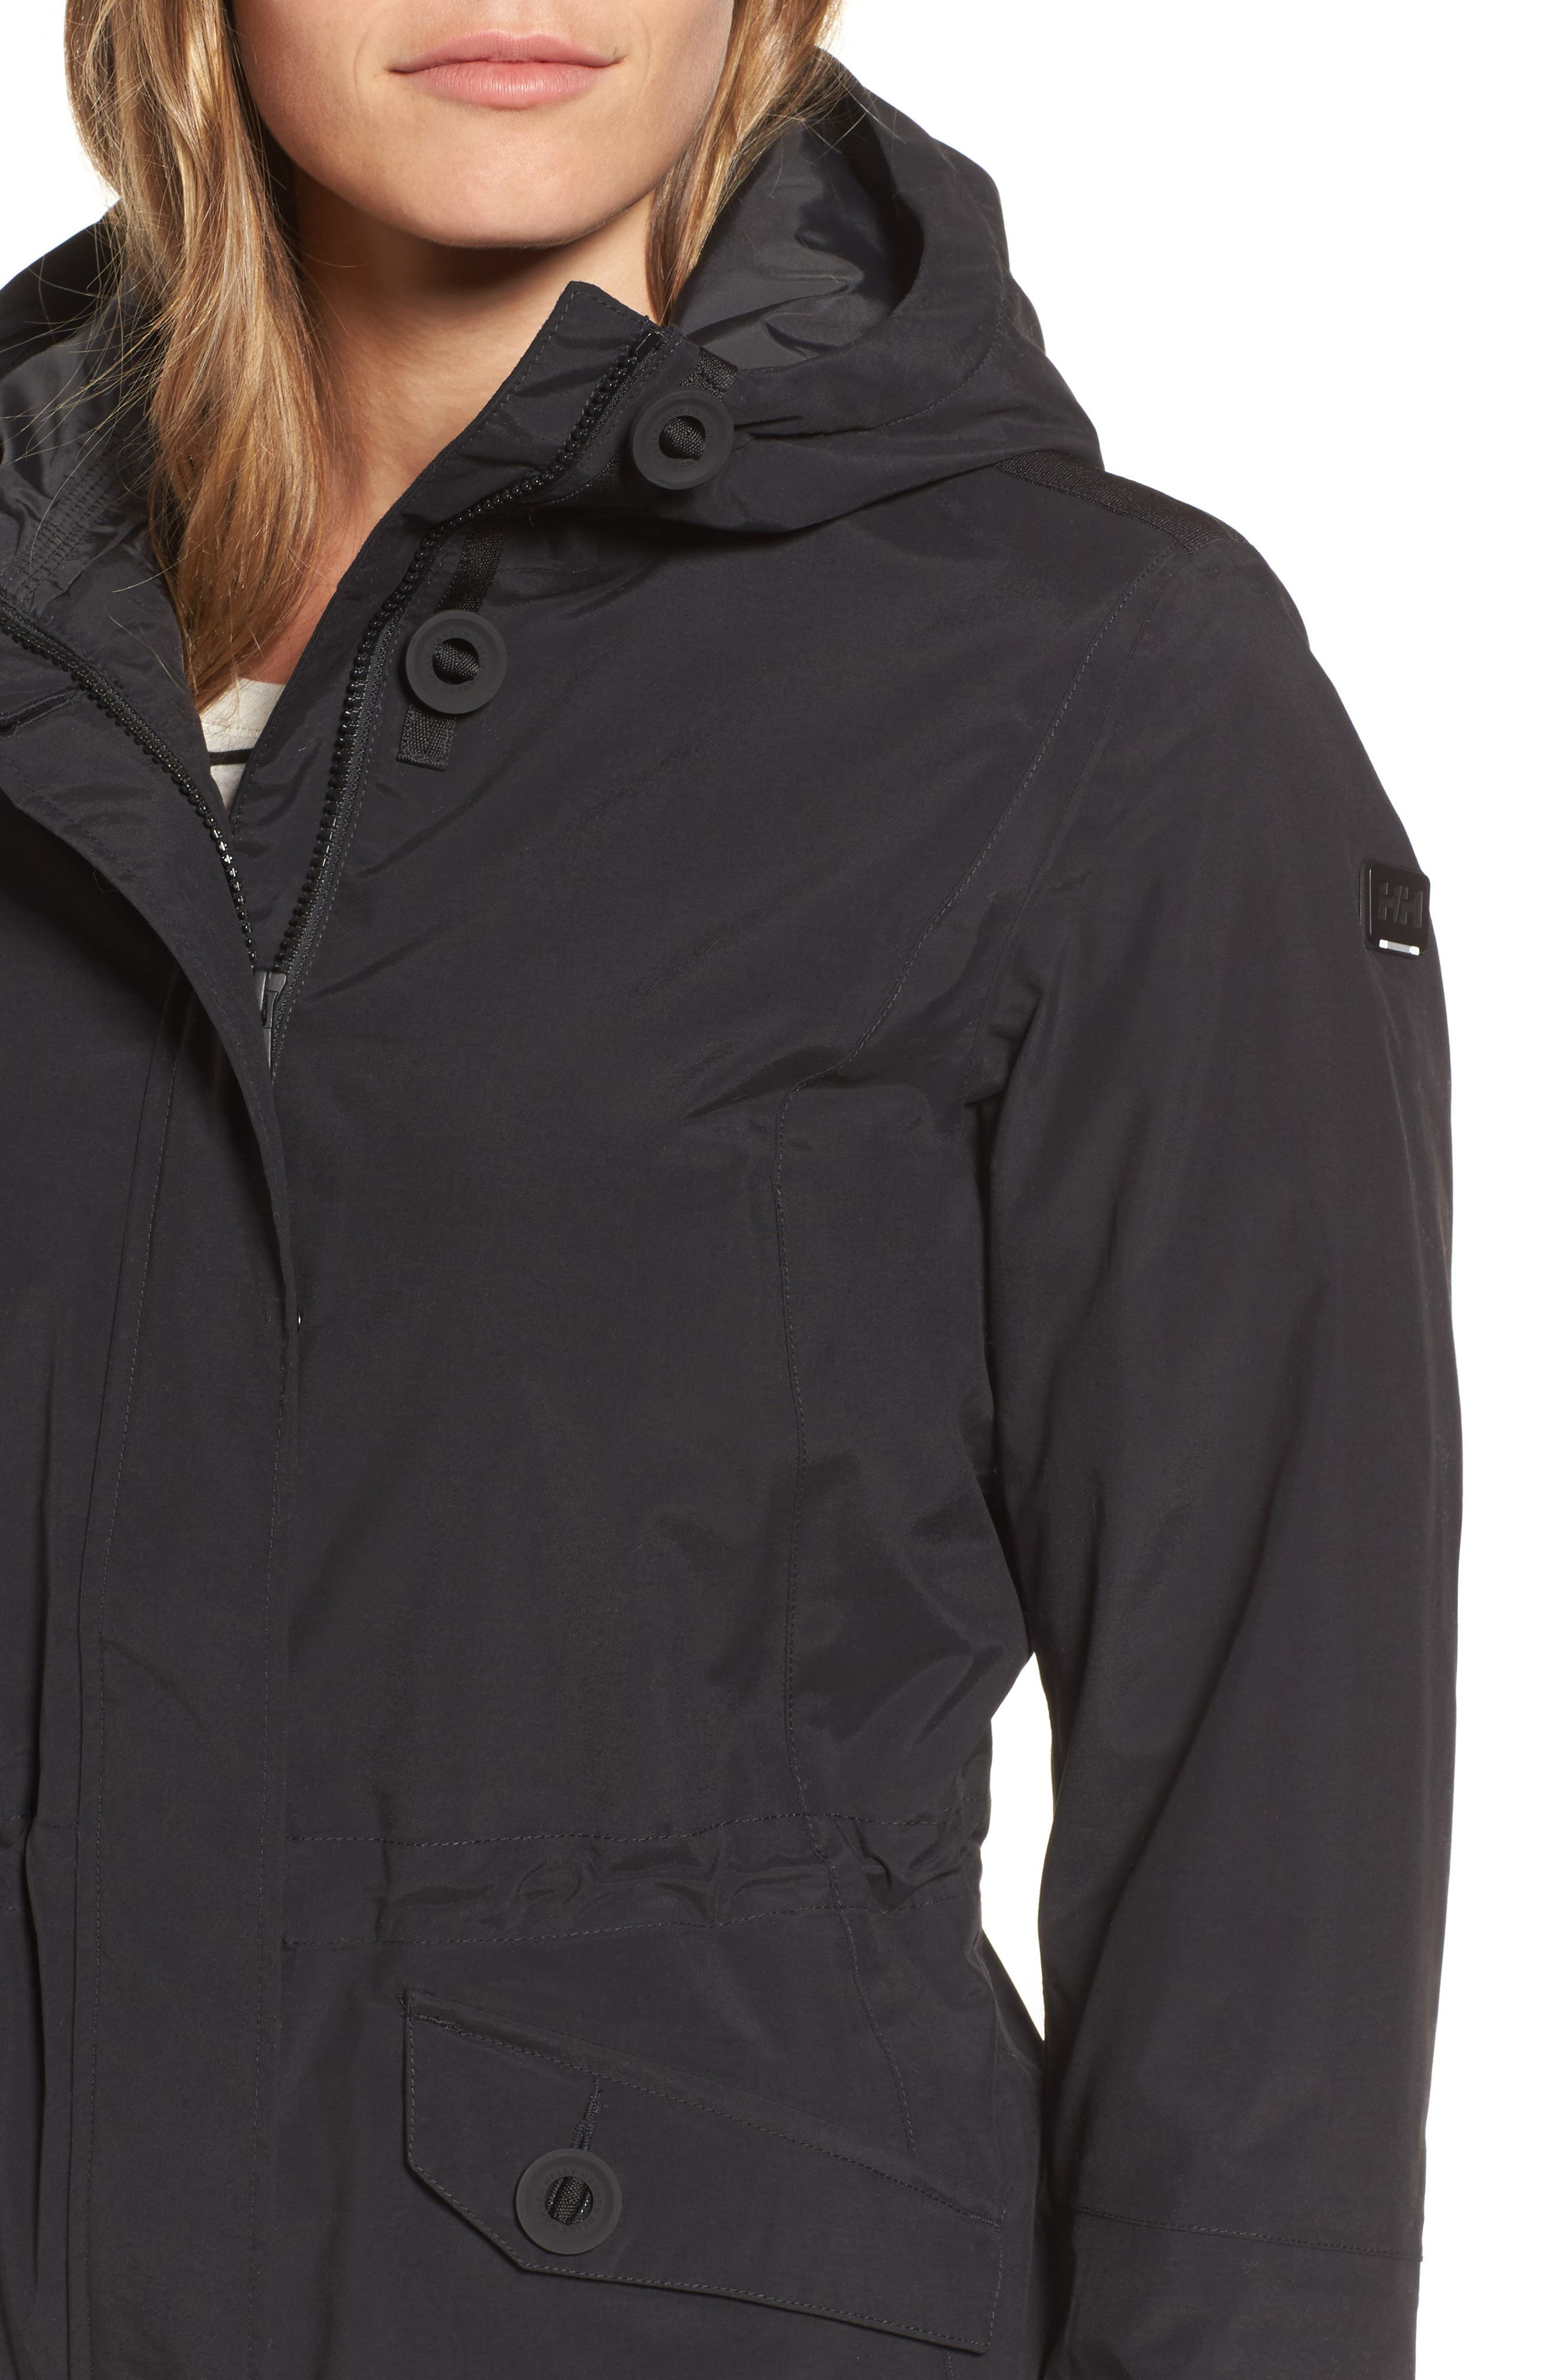 Donegal Waterproof PrimaLoft<sup>®</sup> Insulated Jacket,                             Alternate thumbnail 4, color,                             009